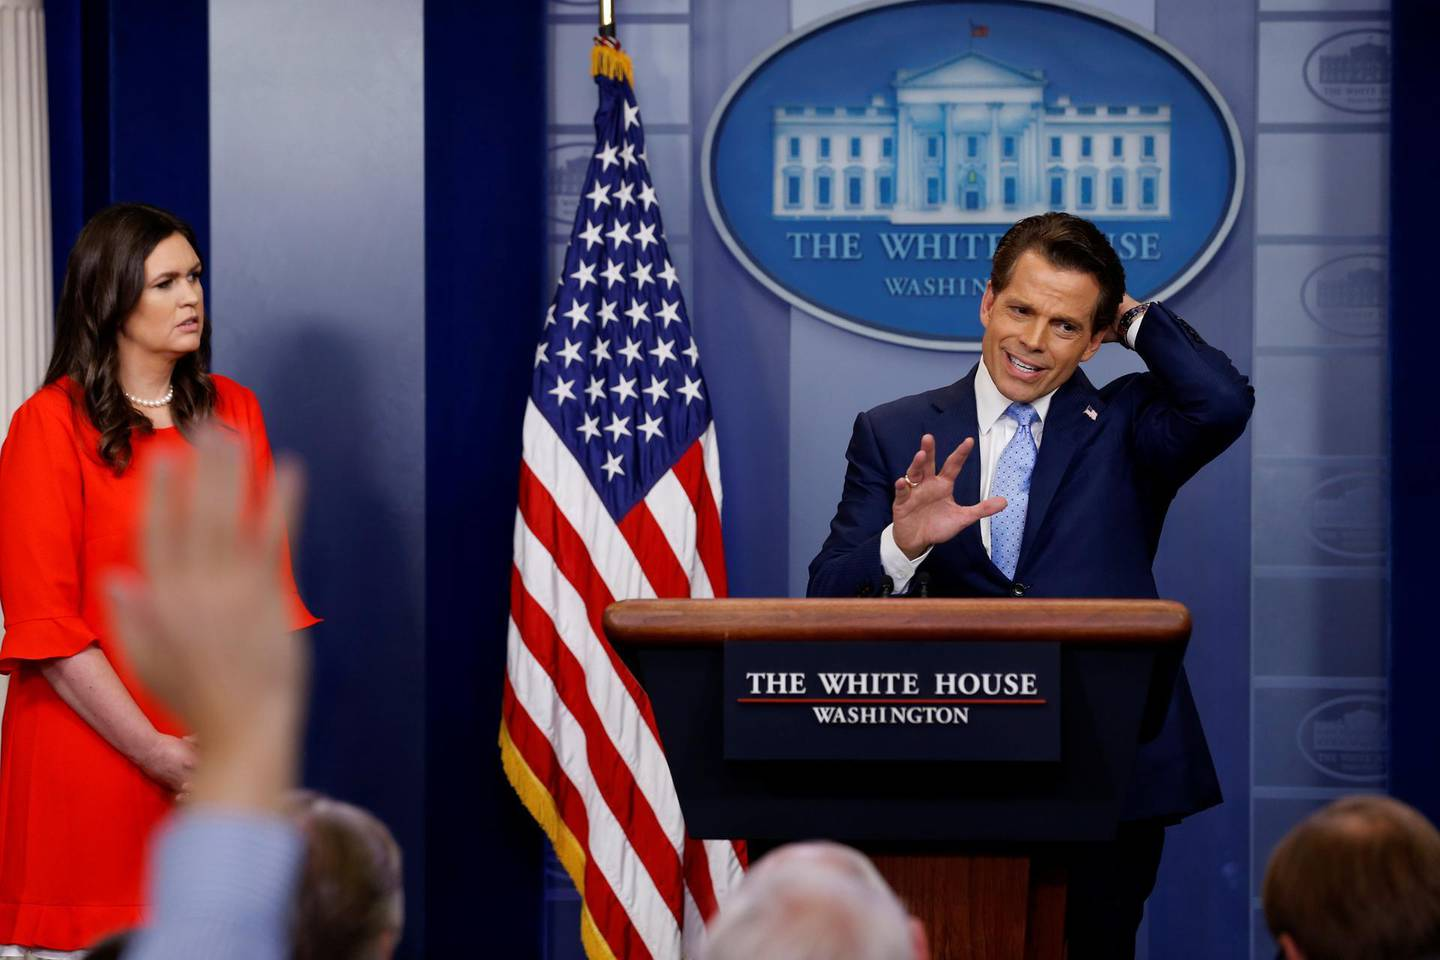 FILE PHOTO: White House Communications Director Anthony Scaramucci, flanked by White House Press Secretary Sarah Sanders, speaks at the daily briefing at the White House in Washington, U.S. July 21, 2017. REUTERS/Jonathan Ernst/File Photo